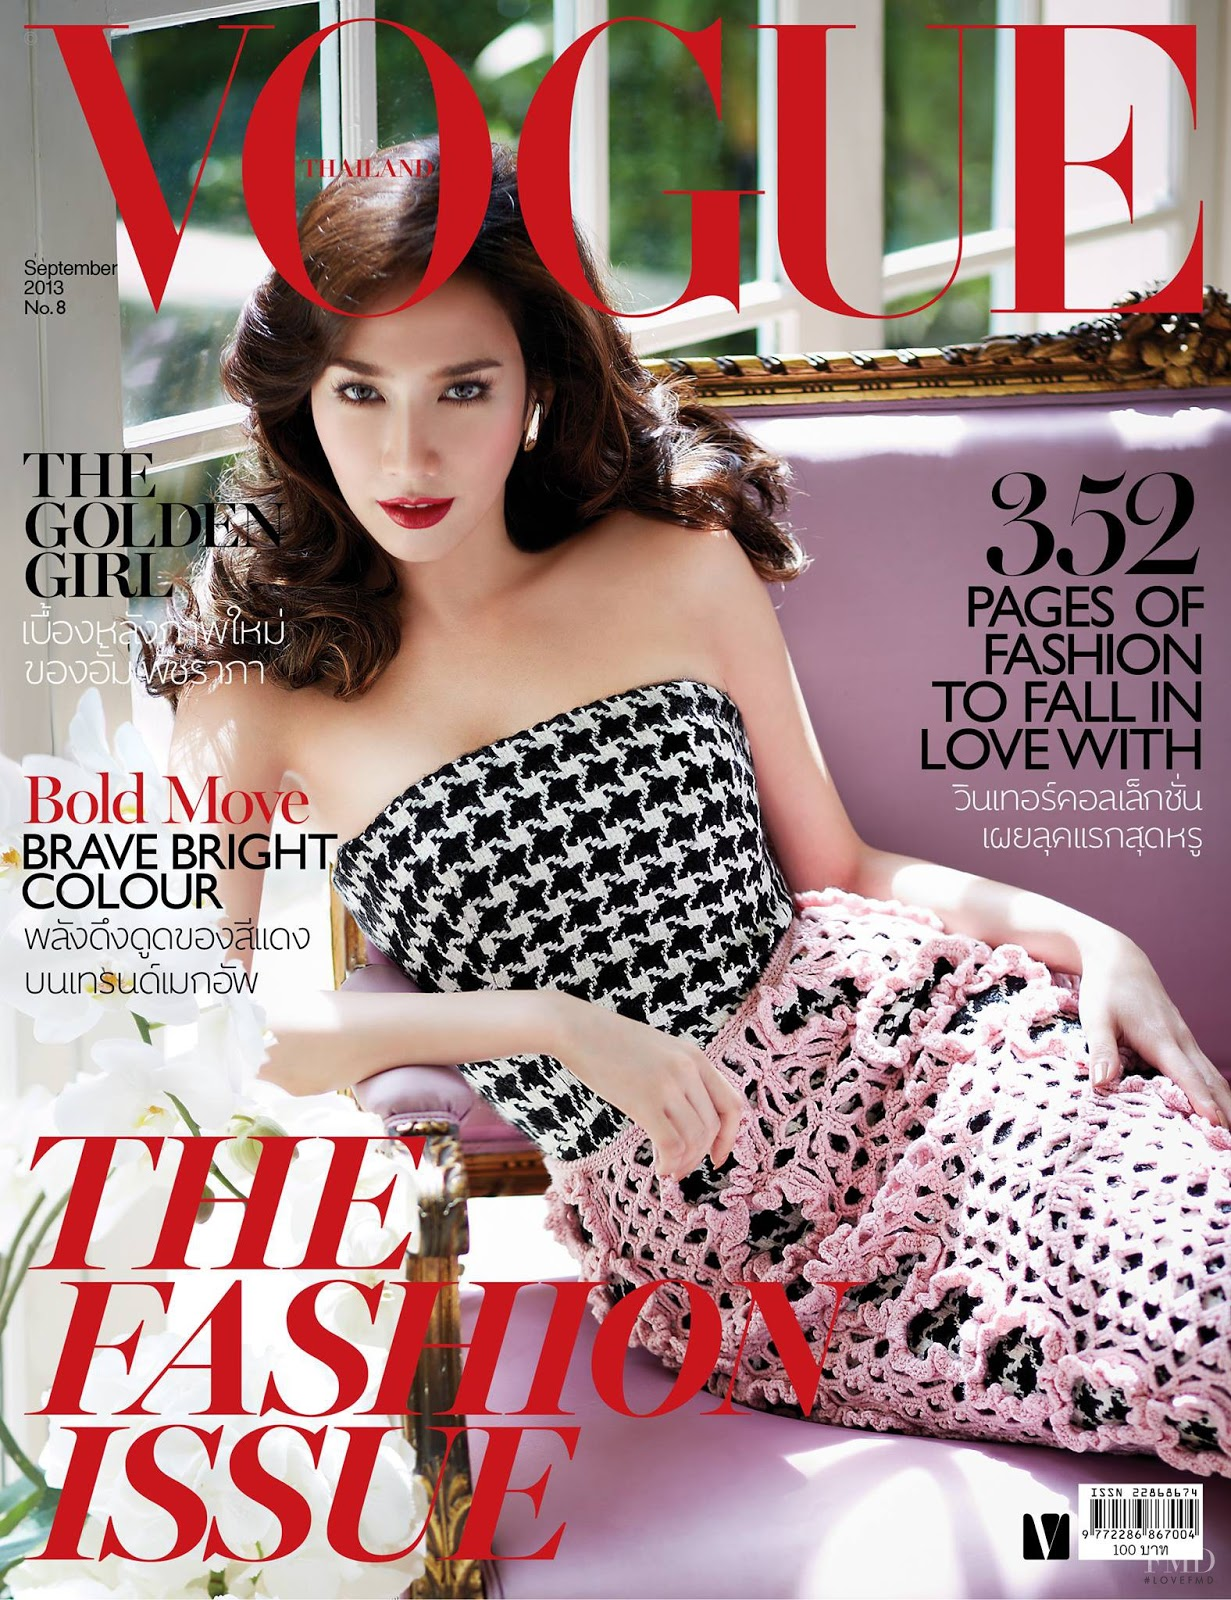 Watch - Fontana isabeli for vogue thailands december issue video